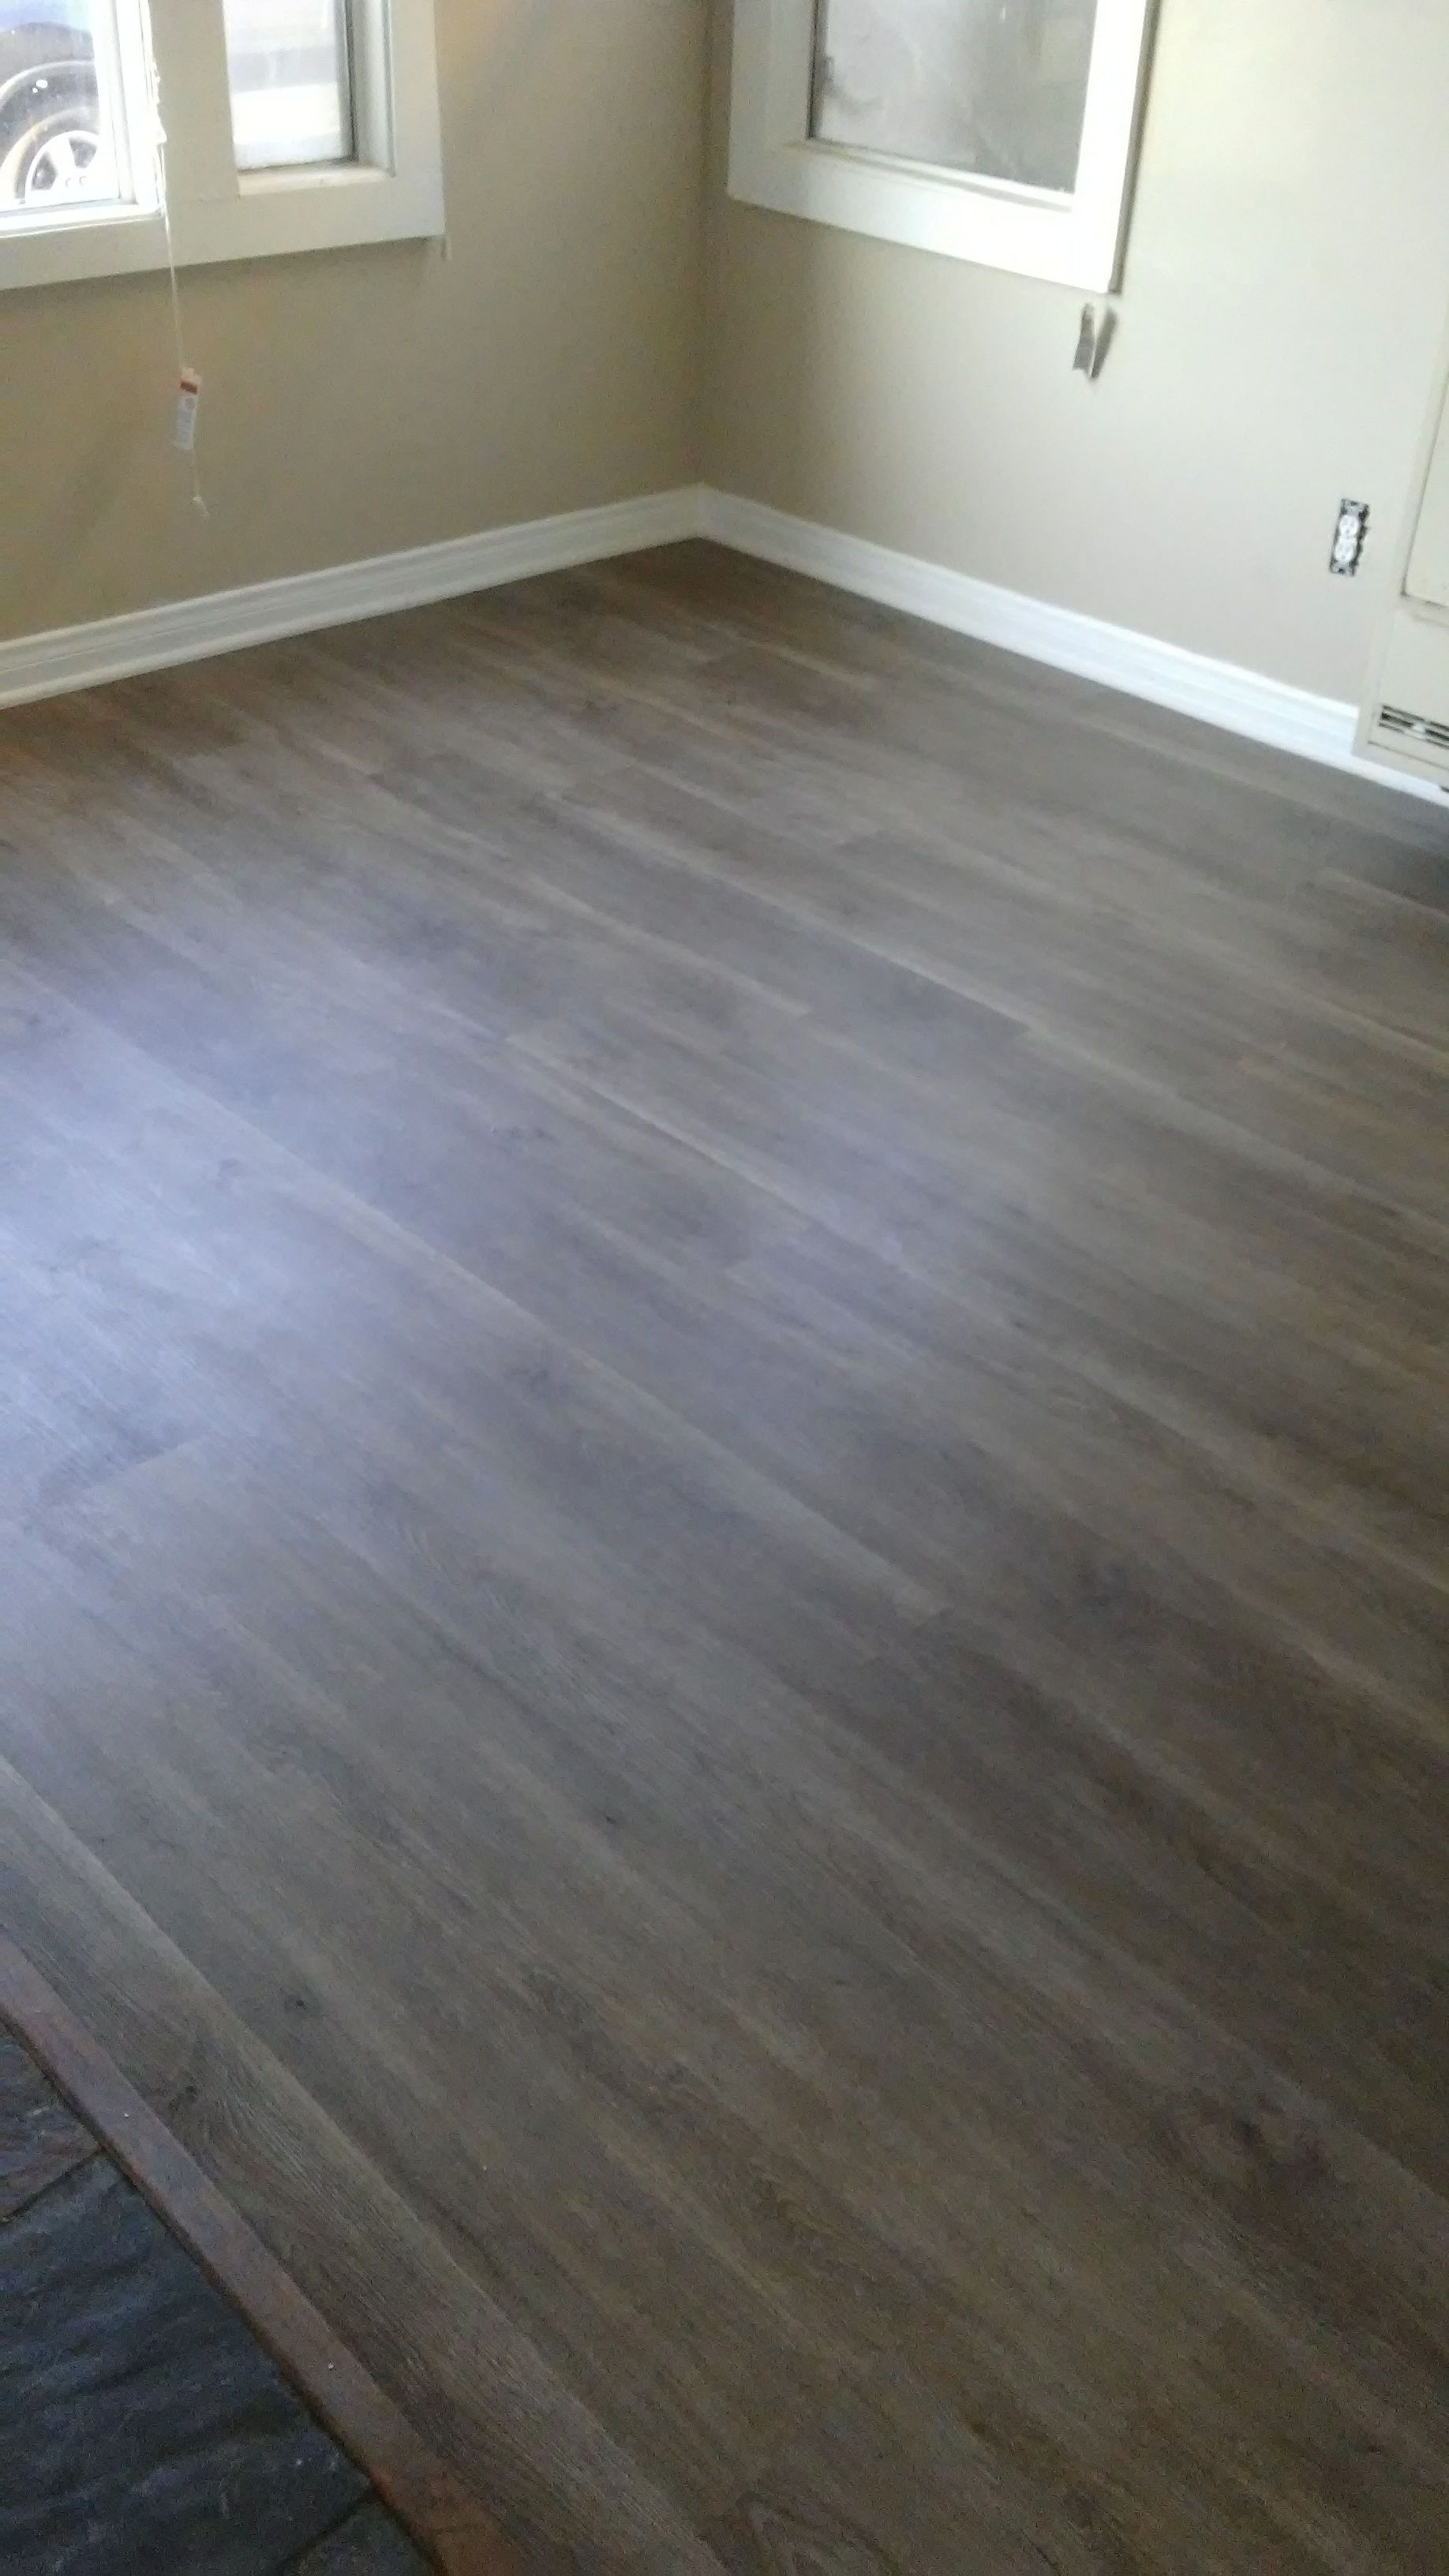 Click Vinyl Plank floors have a natural wood look and its easy to